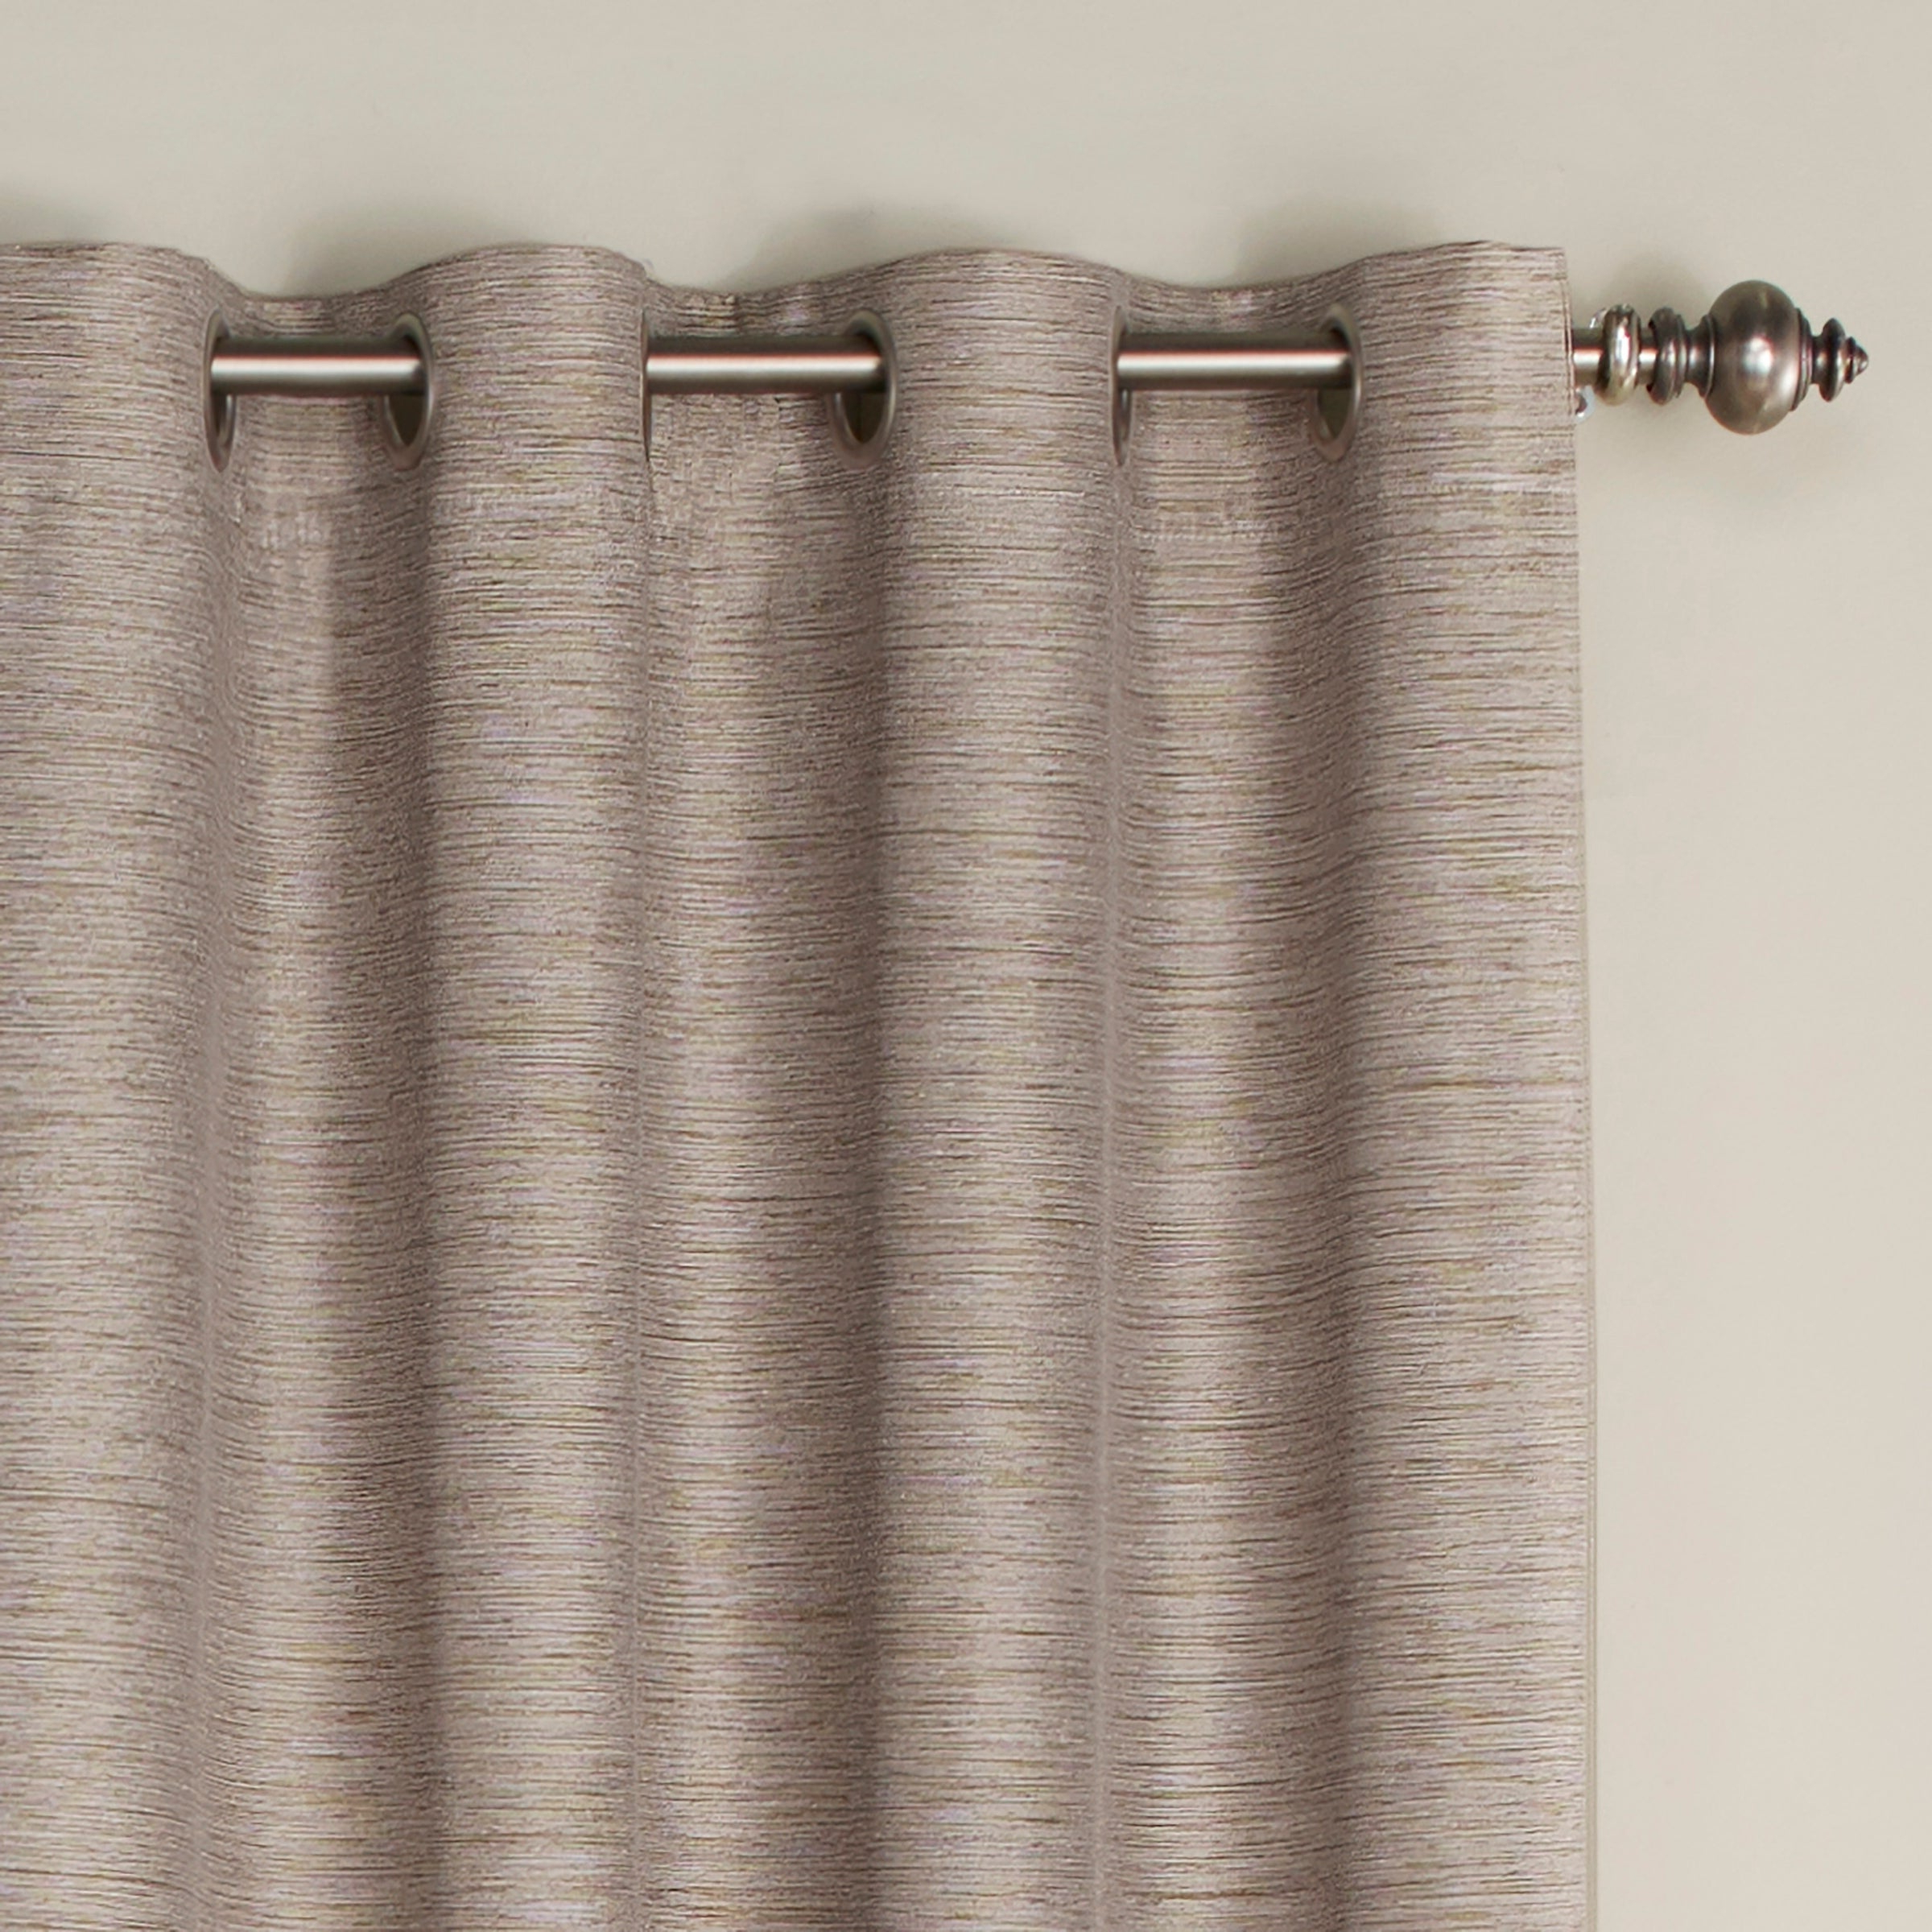 2020 Eclipse Newport Blackout Curtain Panels Within Eclipse Newport Blackout Curtain Panel – 52x (View 10 of 20)